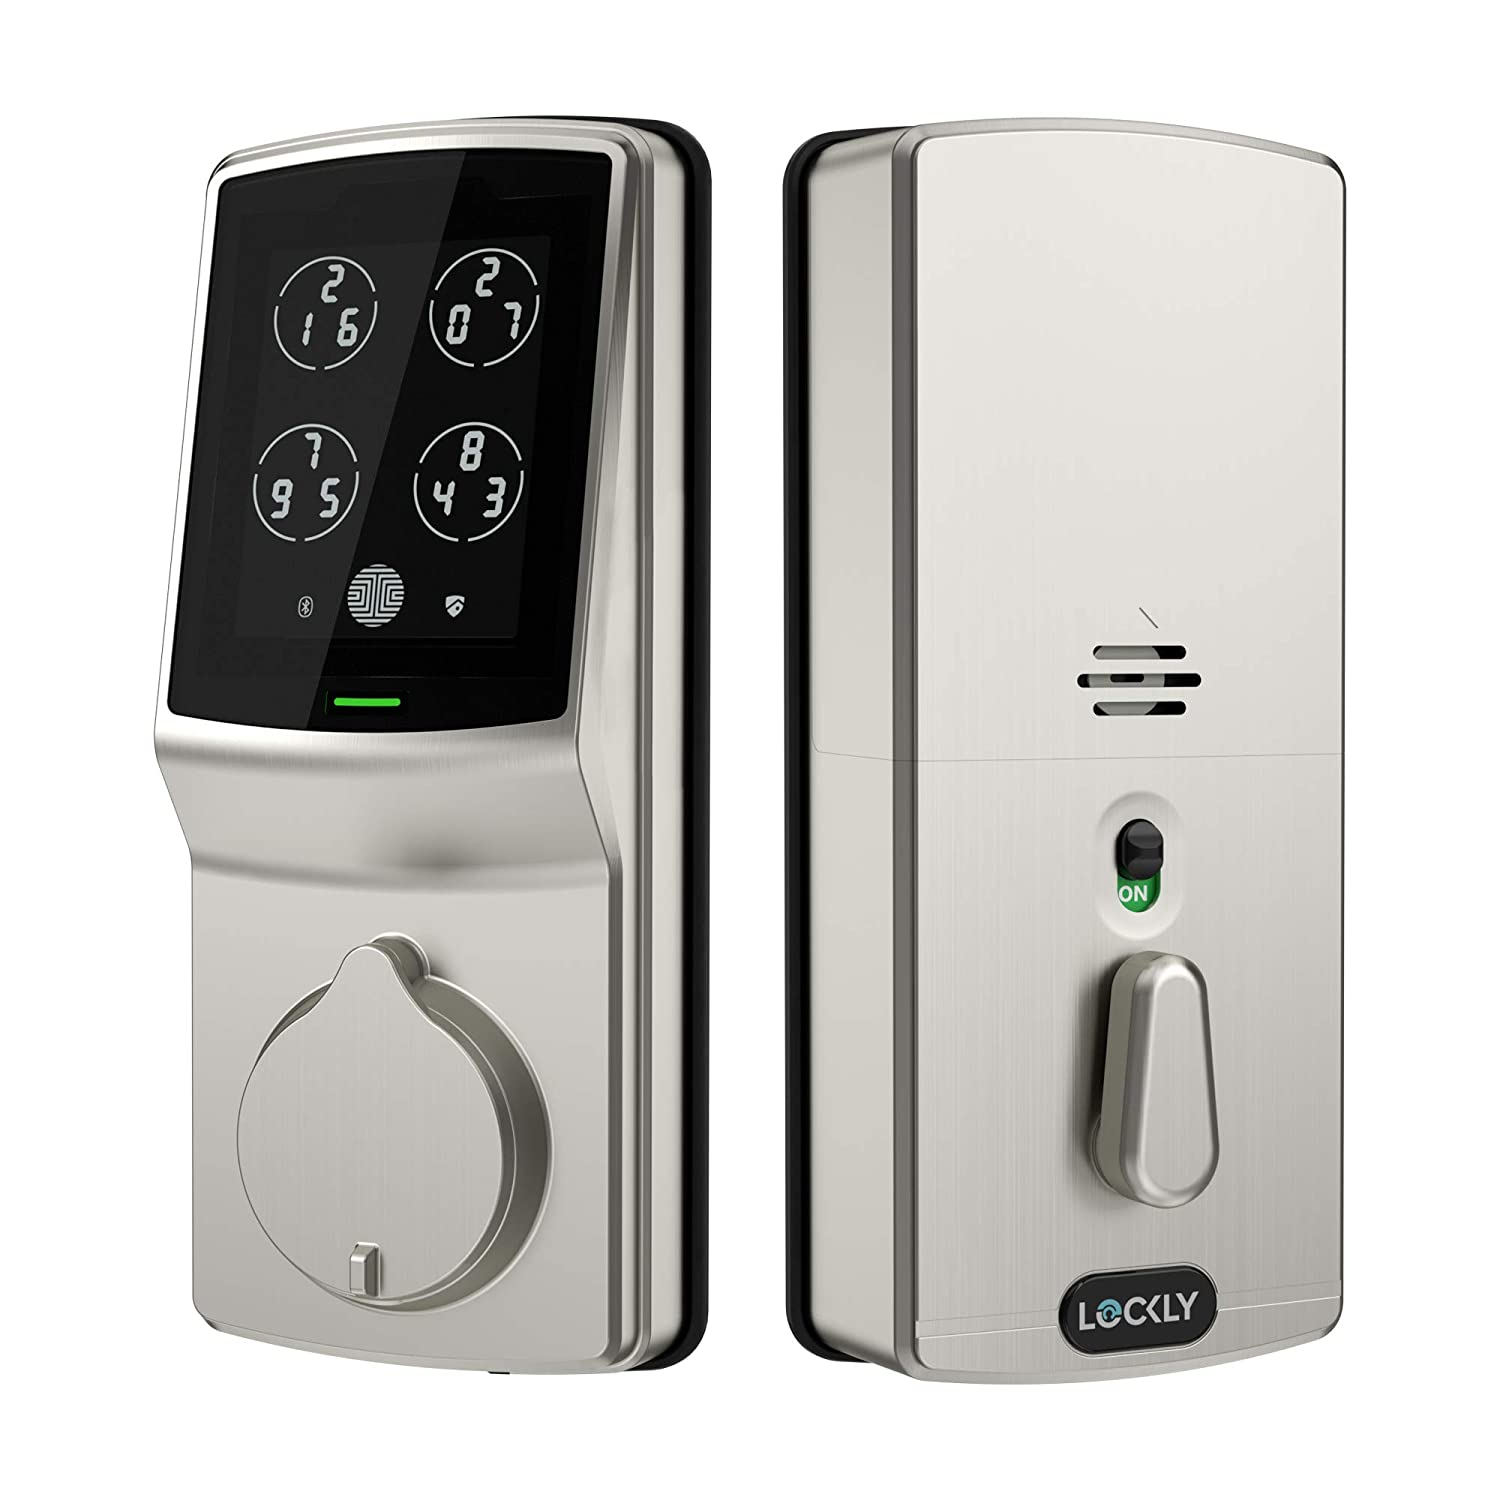 PIN Genie Bluetooth Keyless Entry Smart Door Lock (PGD 728)